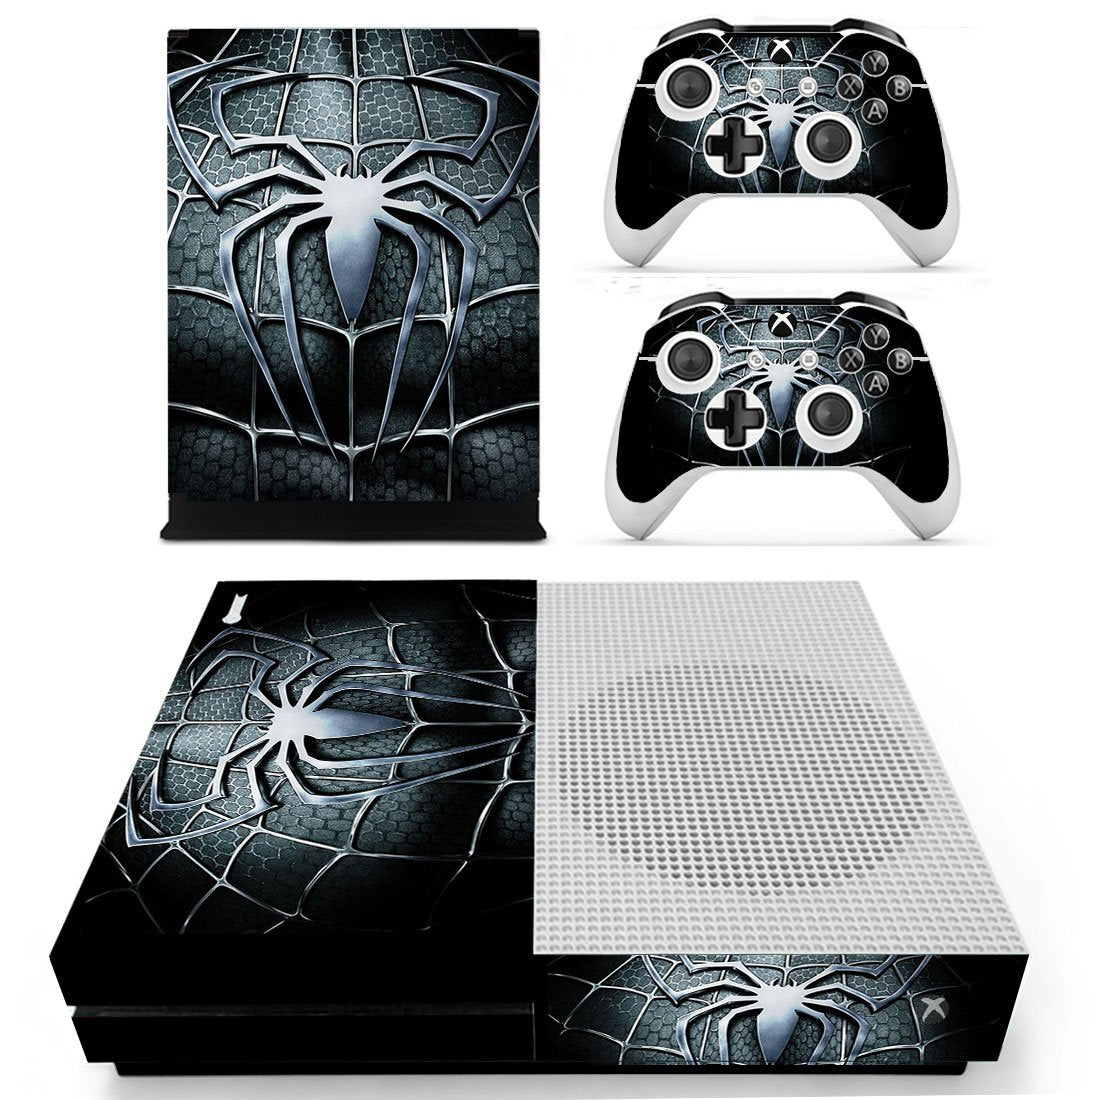 Spider-Man Xbox One S Skin Sticker Wrap